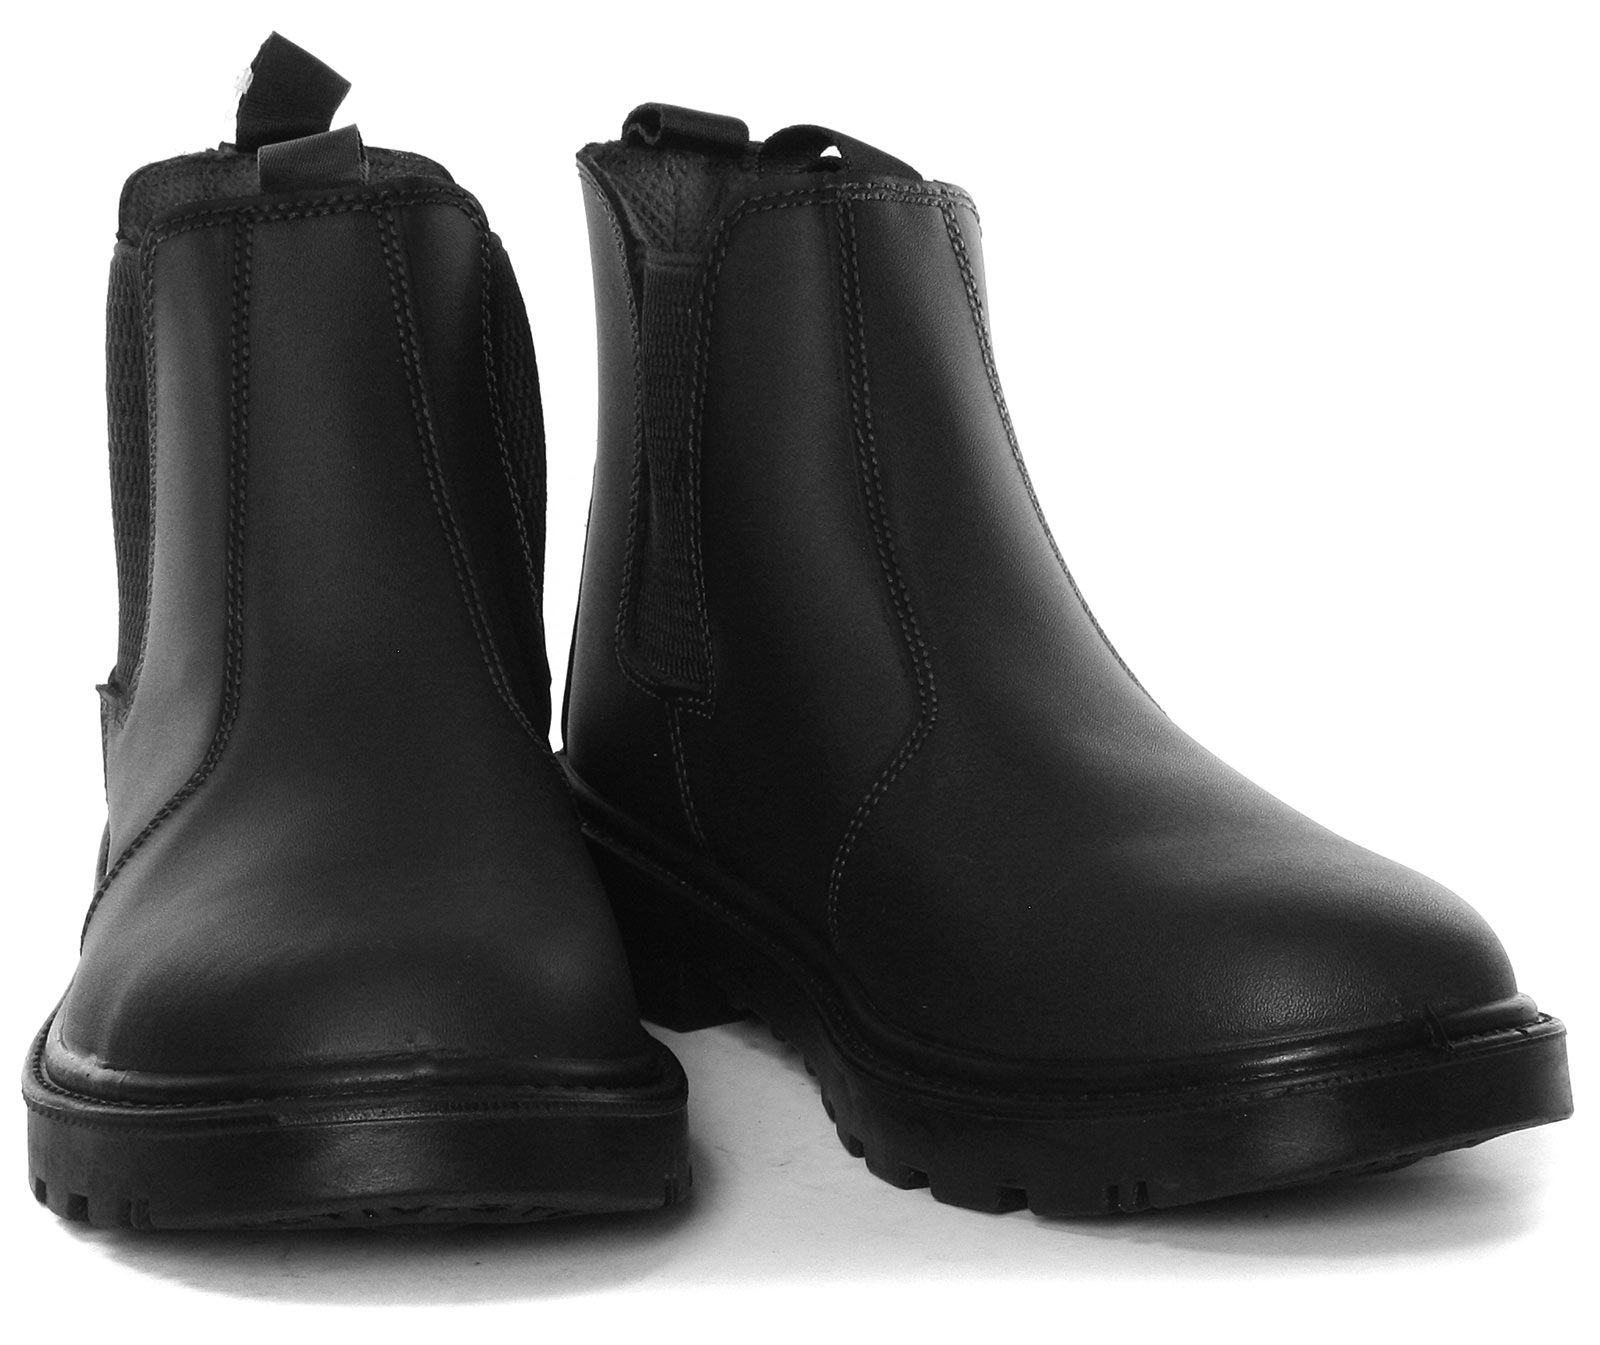 Grafters-Grinder-Twin-Gusset-Dealer-Mens-Safety-Boots-ALL-SIZES-AND-COLOURS miniature 6